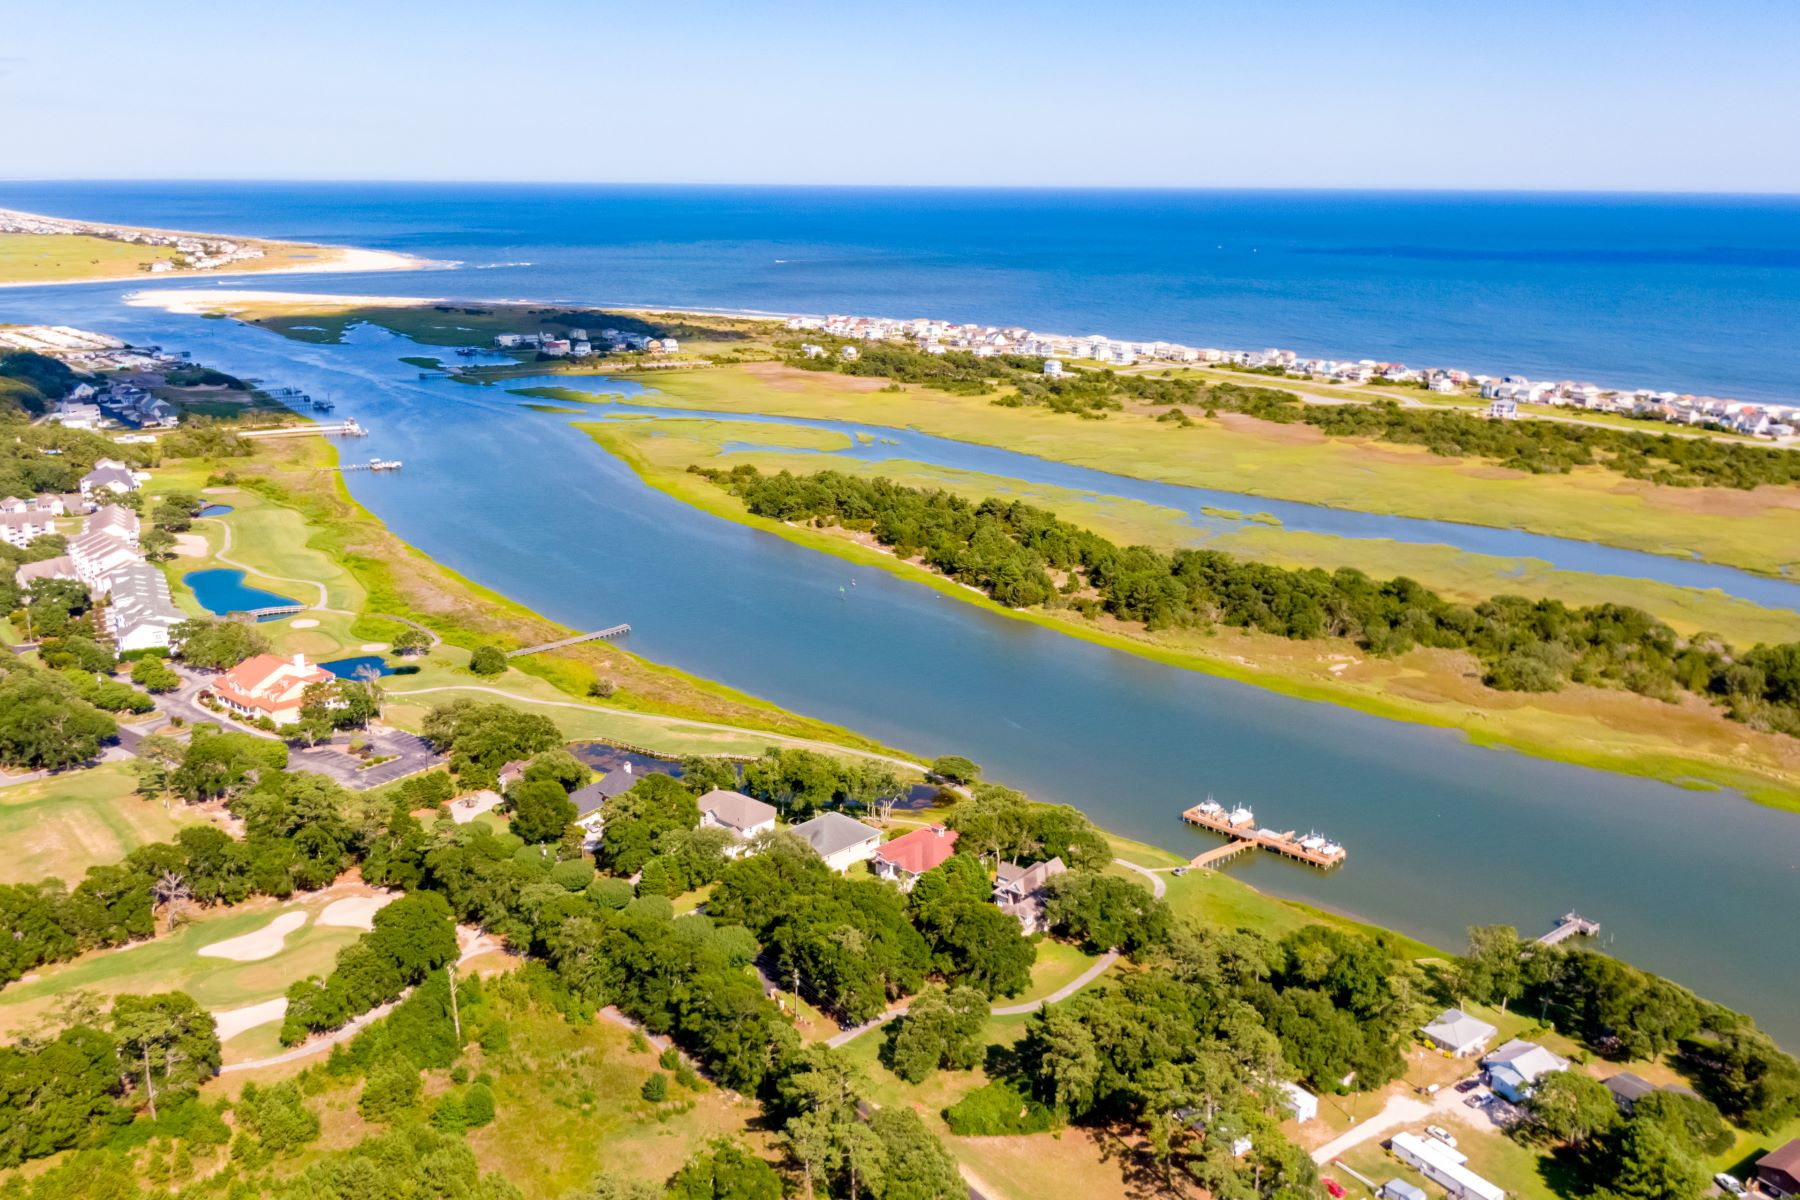 Land for Sale at Waterfront Lot Featuring Breathtaking Views 1856 Goose Creek Road SW Ocean Isle Beach, North Carolina 28469 United States